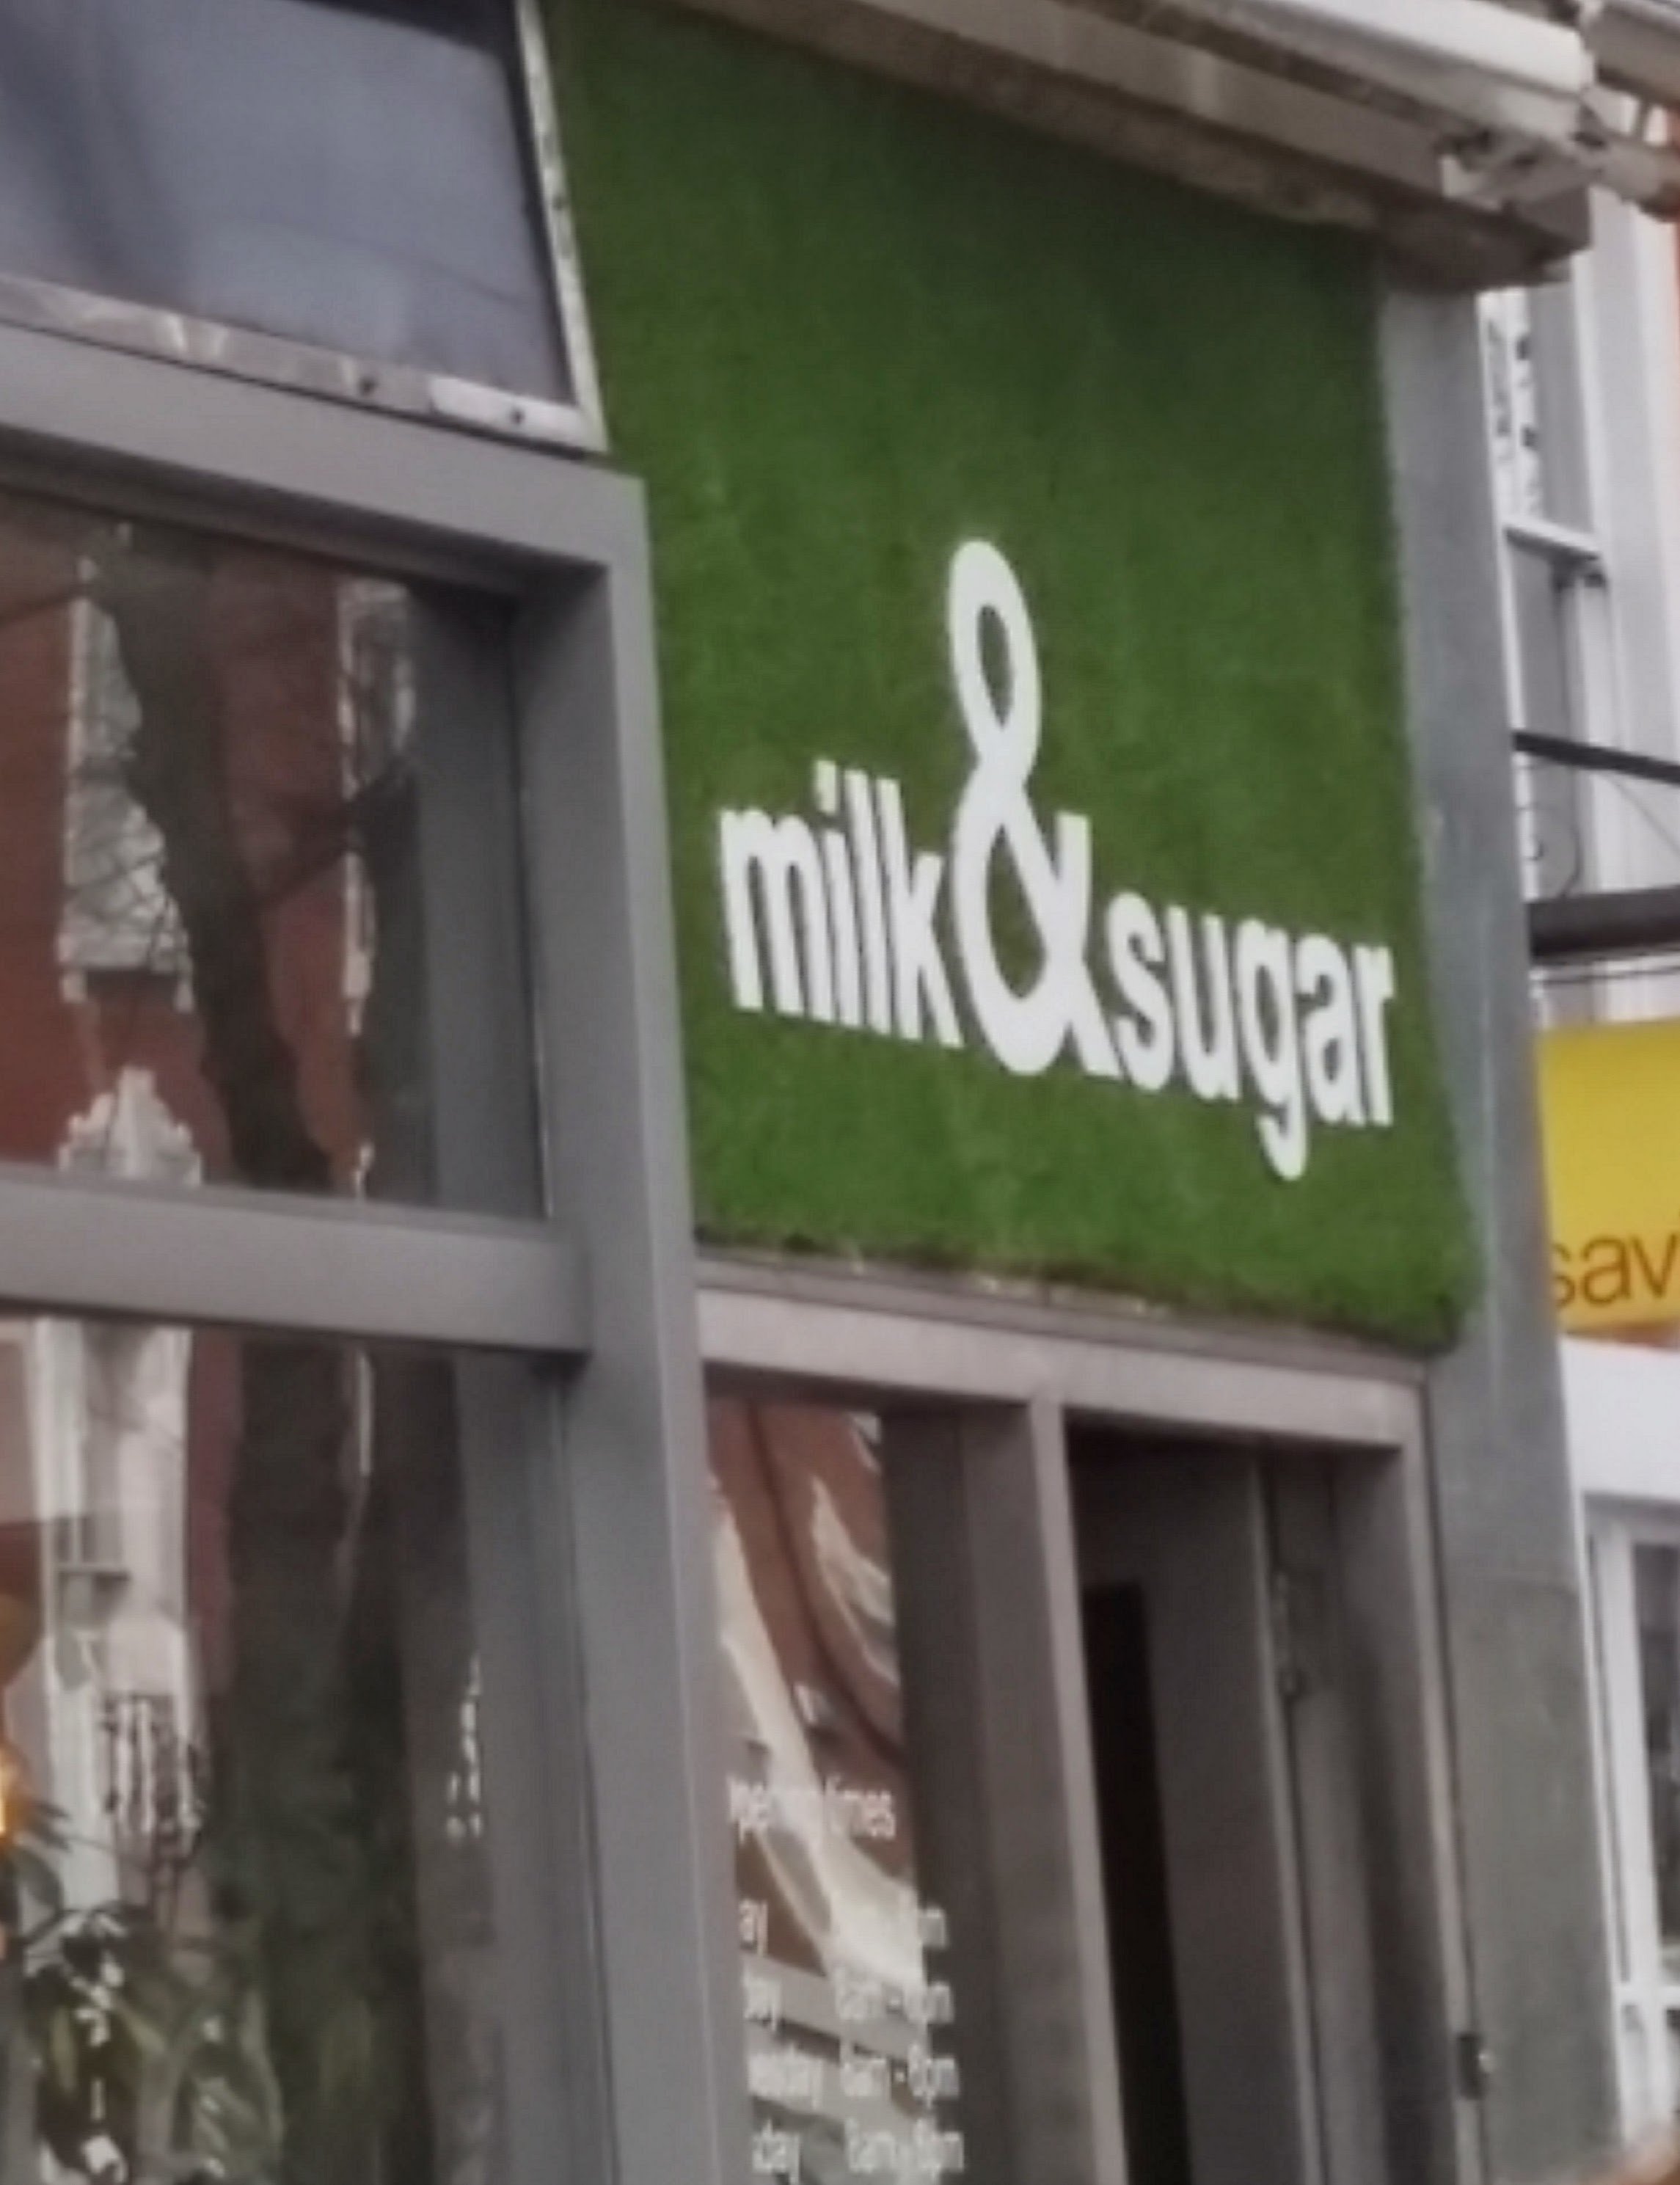 The land of milk and yummy – Milk & Sugar, Cardiff.